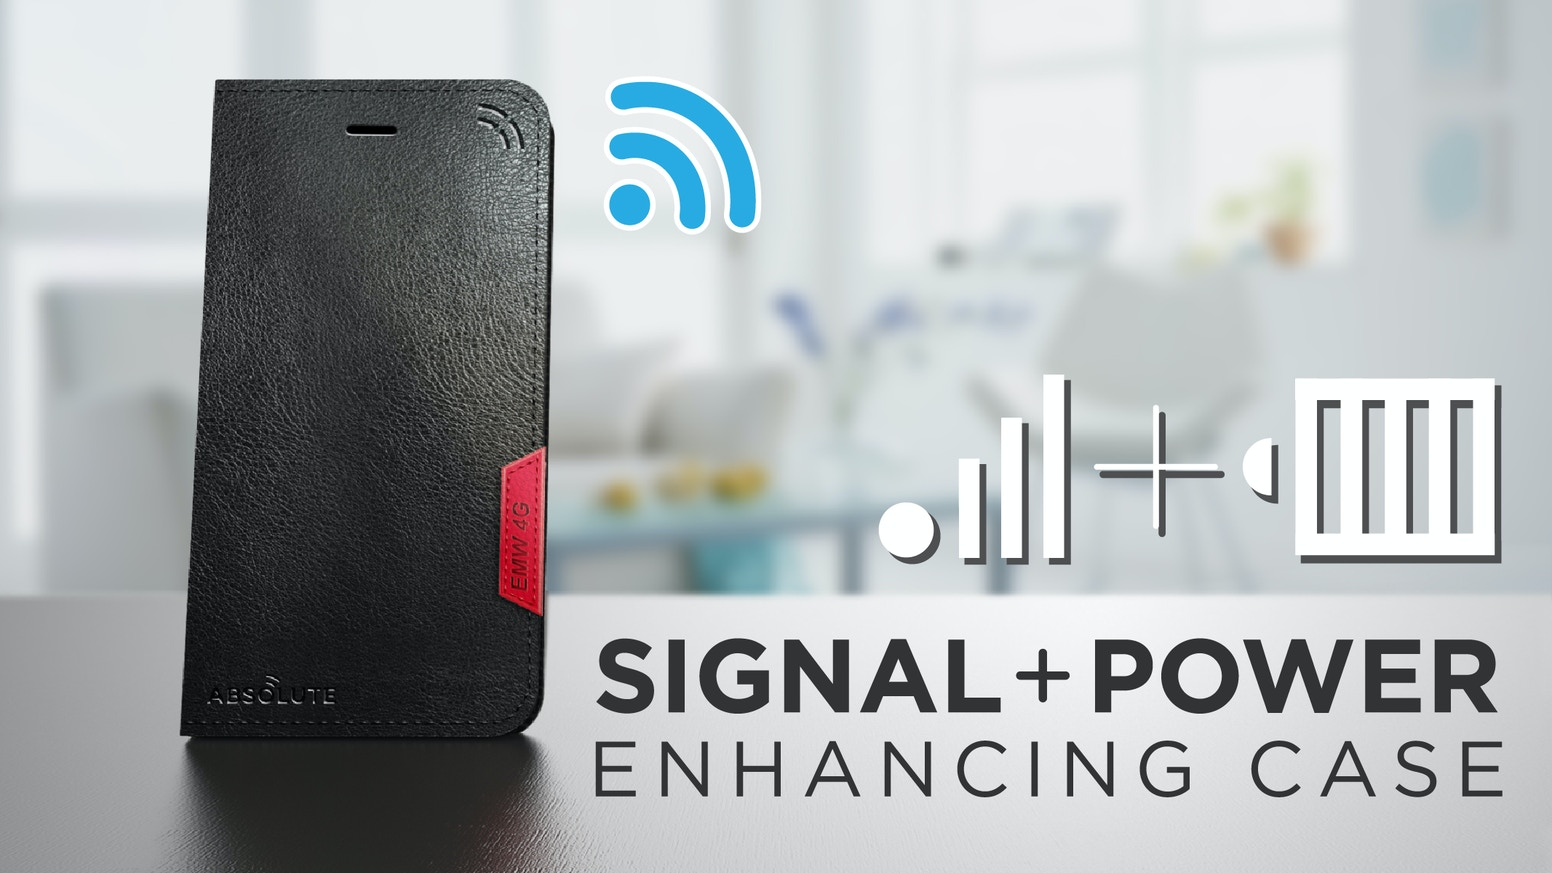 linkbook pro turbocharge your phone signal by absolute technology kickstarter. Black Bedroom Furniture Sets. Home Design Ideas